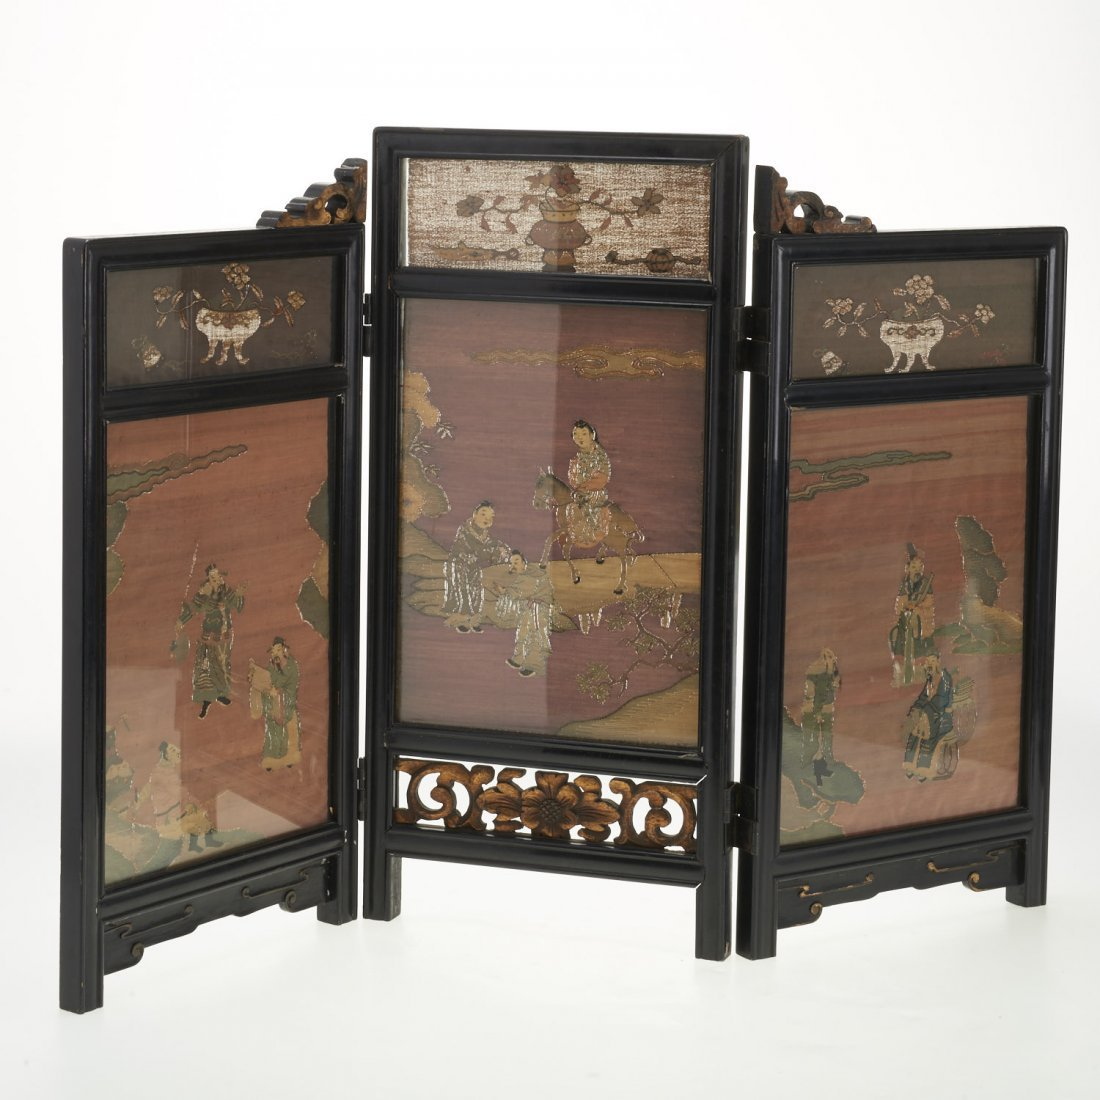 Antique Chinese Kesi panel, lacquer table screen - 7